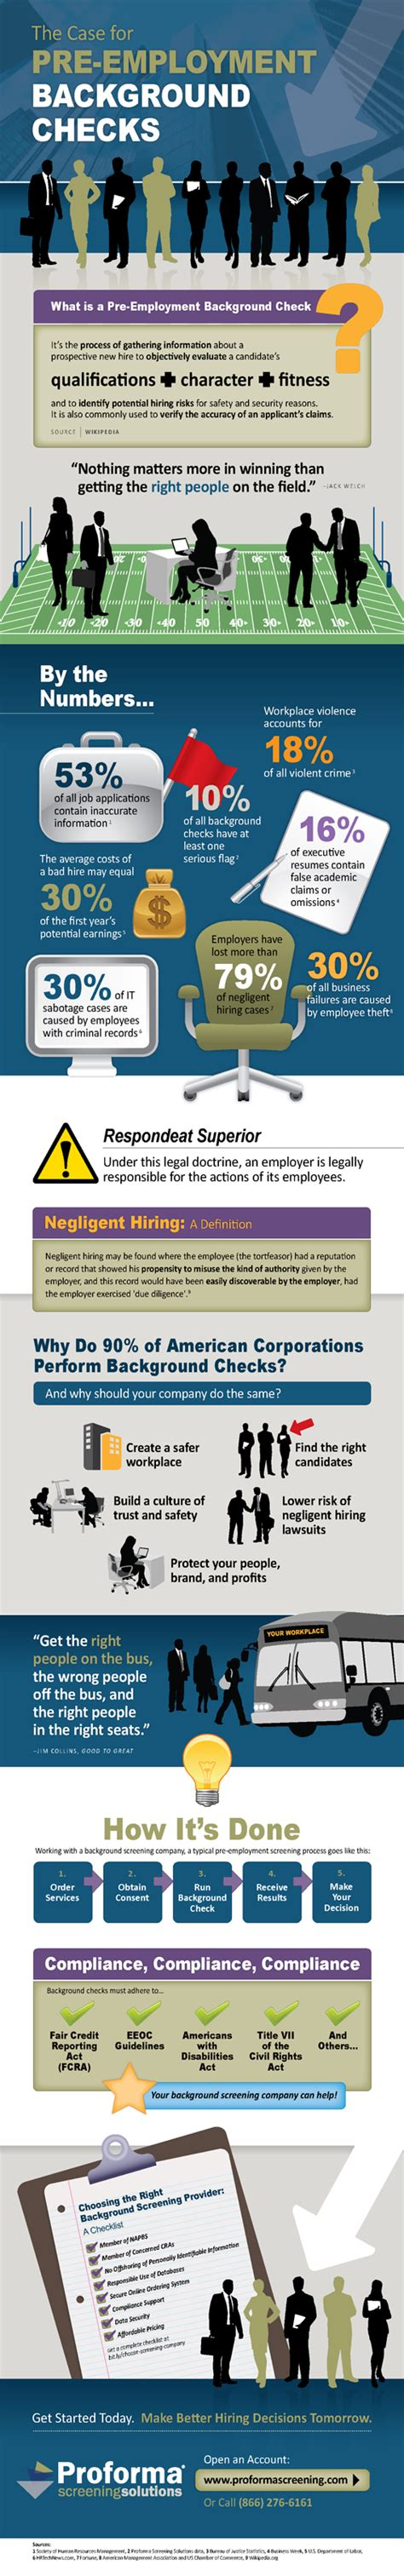 20 Amazing Infographics On Employment  Infographics. Why Is Wheezing Usually Worse When Asthmatics Exhale. Customer Experience Manager Job Description. Is Biosilk Good For Your Hair. School For Human Services E Learning Programs. Collapsible Shipping Containers. Sign In To Office 365 Email Pep Showbiz News. How To Become A Investment Advisor. Mortgage Interest Rates As Of Today